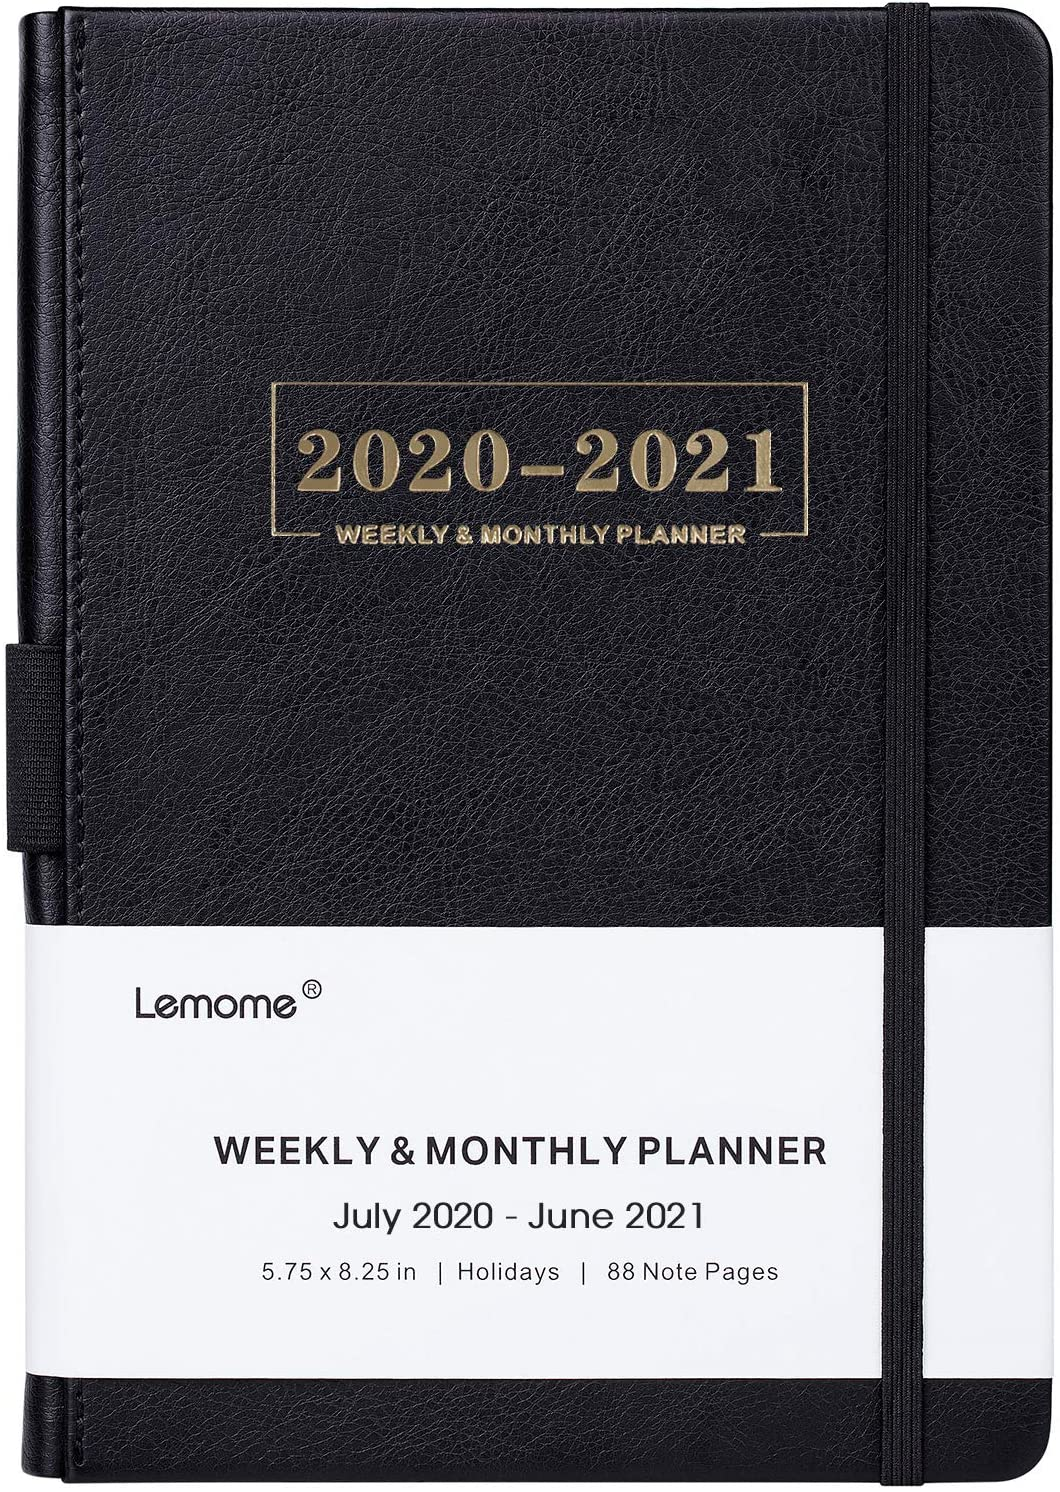 Lemome Planner with Pen Loop